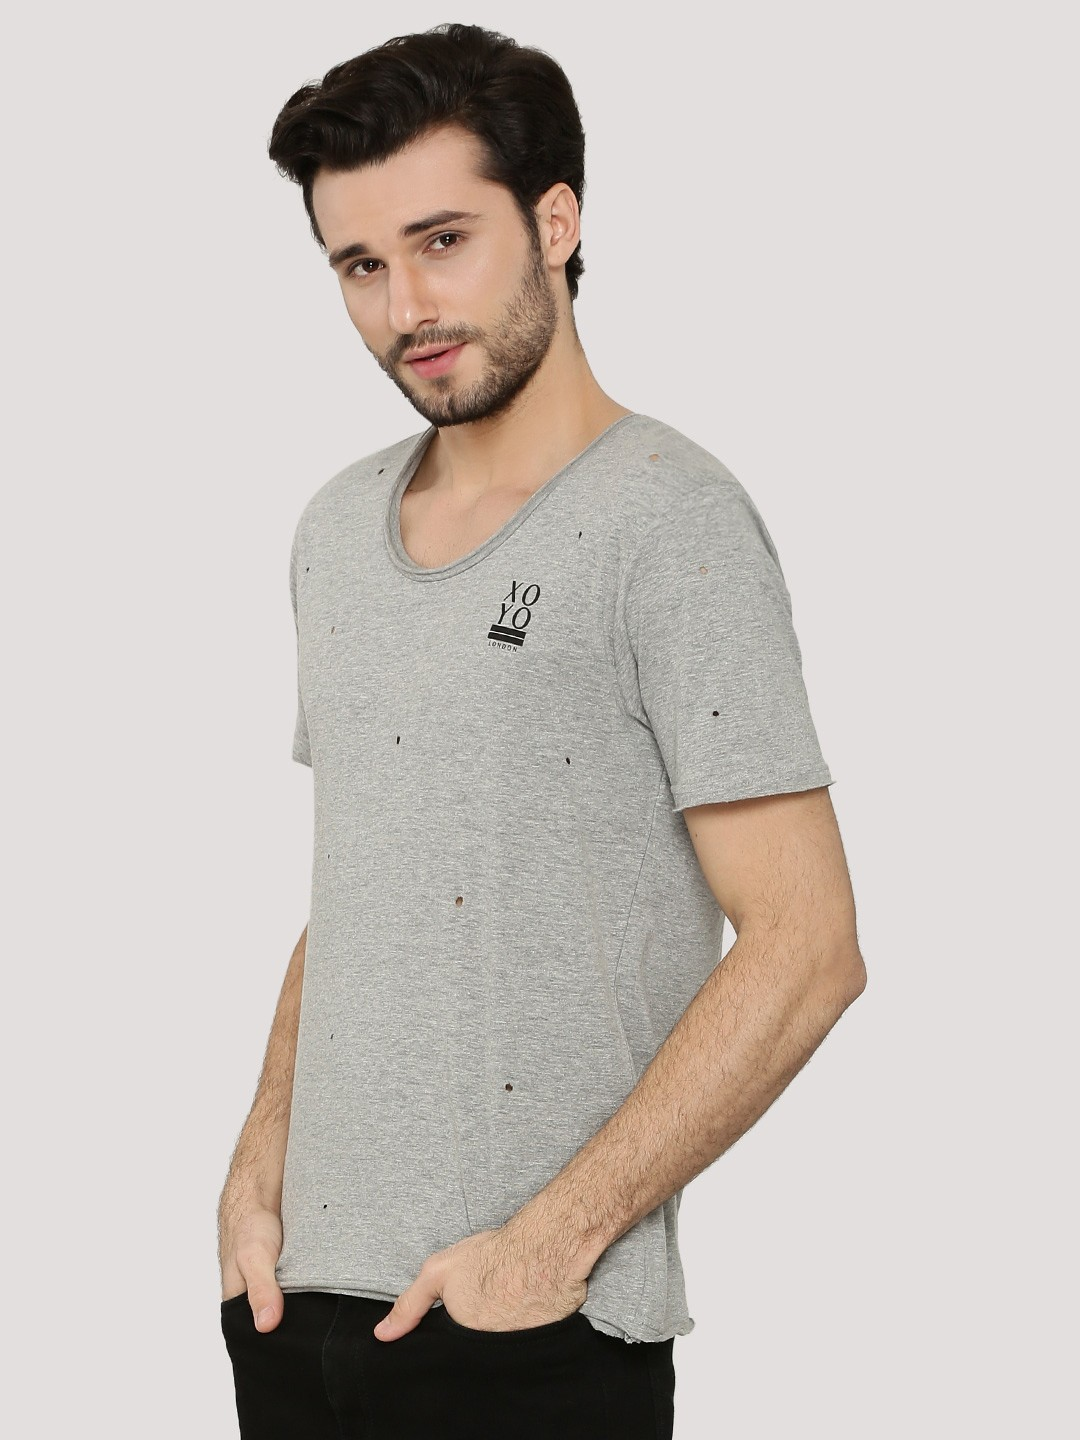 X.O.Y.O LT GREY Distressed Scoop Neck T-Shirt 1